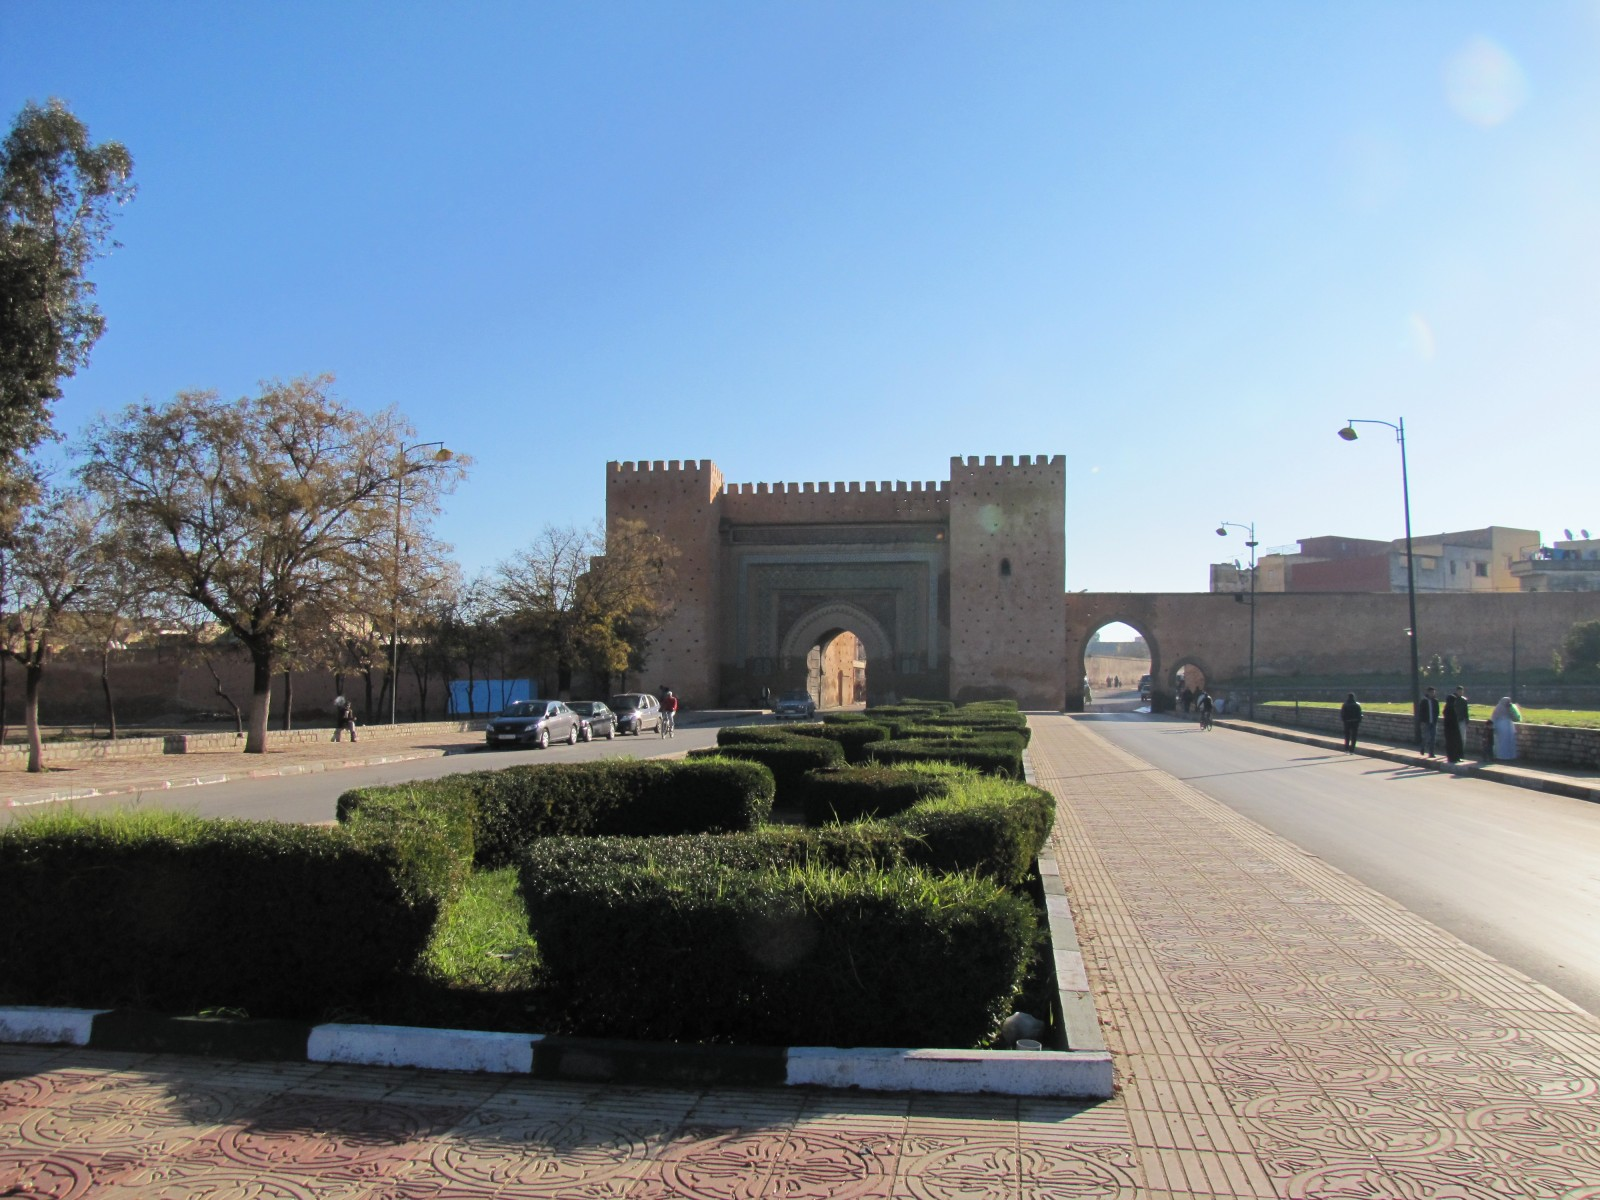 Meknes Morocco  City new picture : Bab el Khemis Gate in Meknes, Morocco